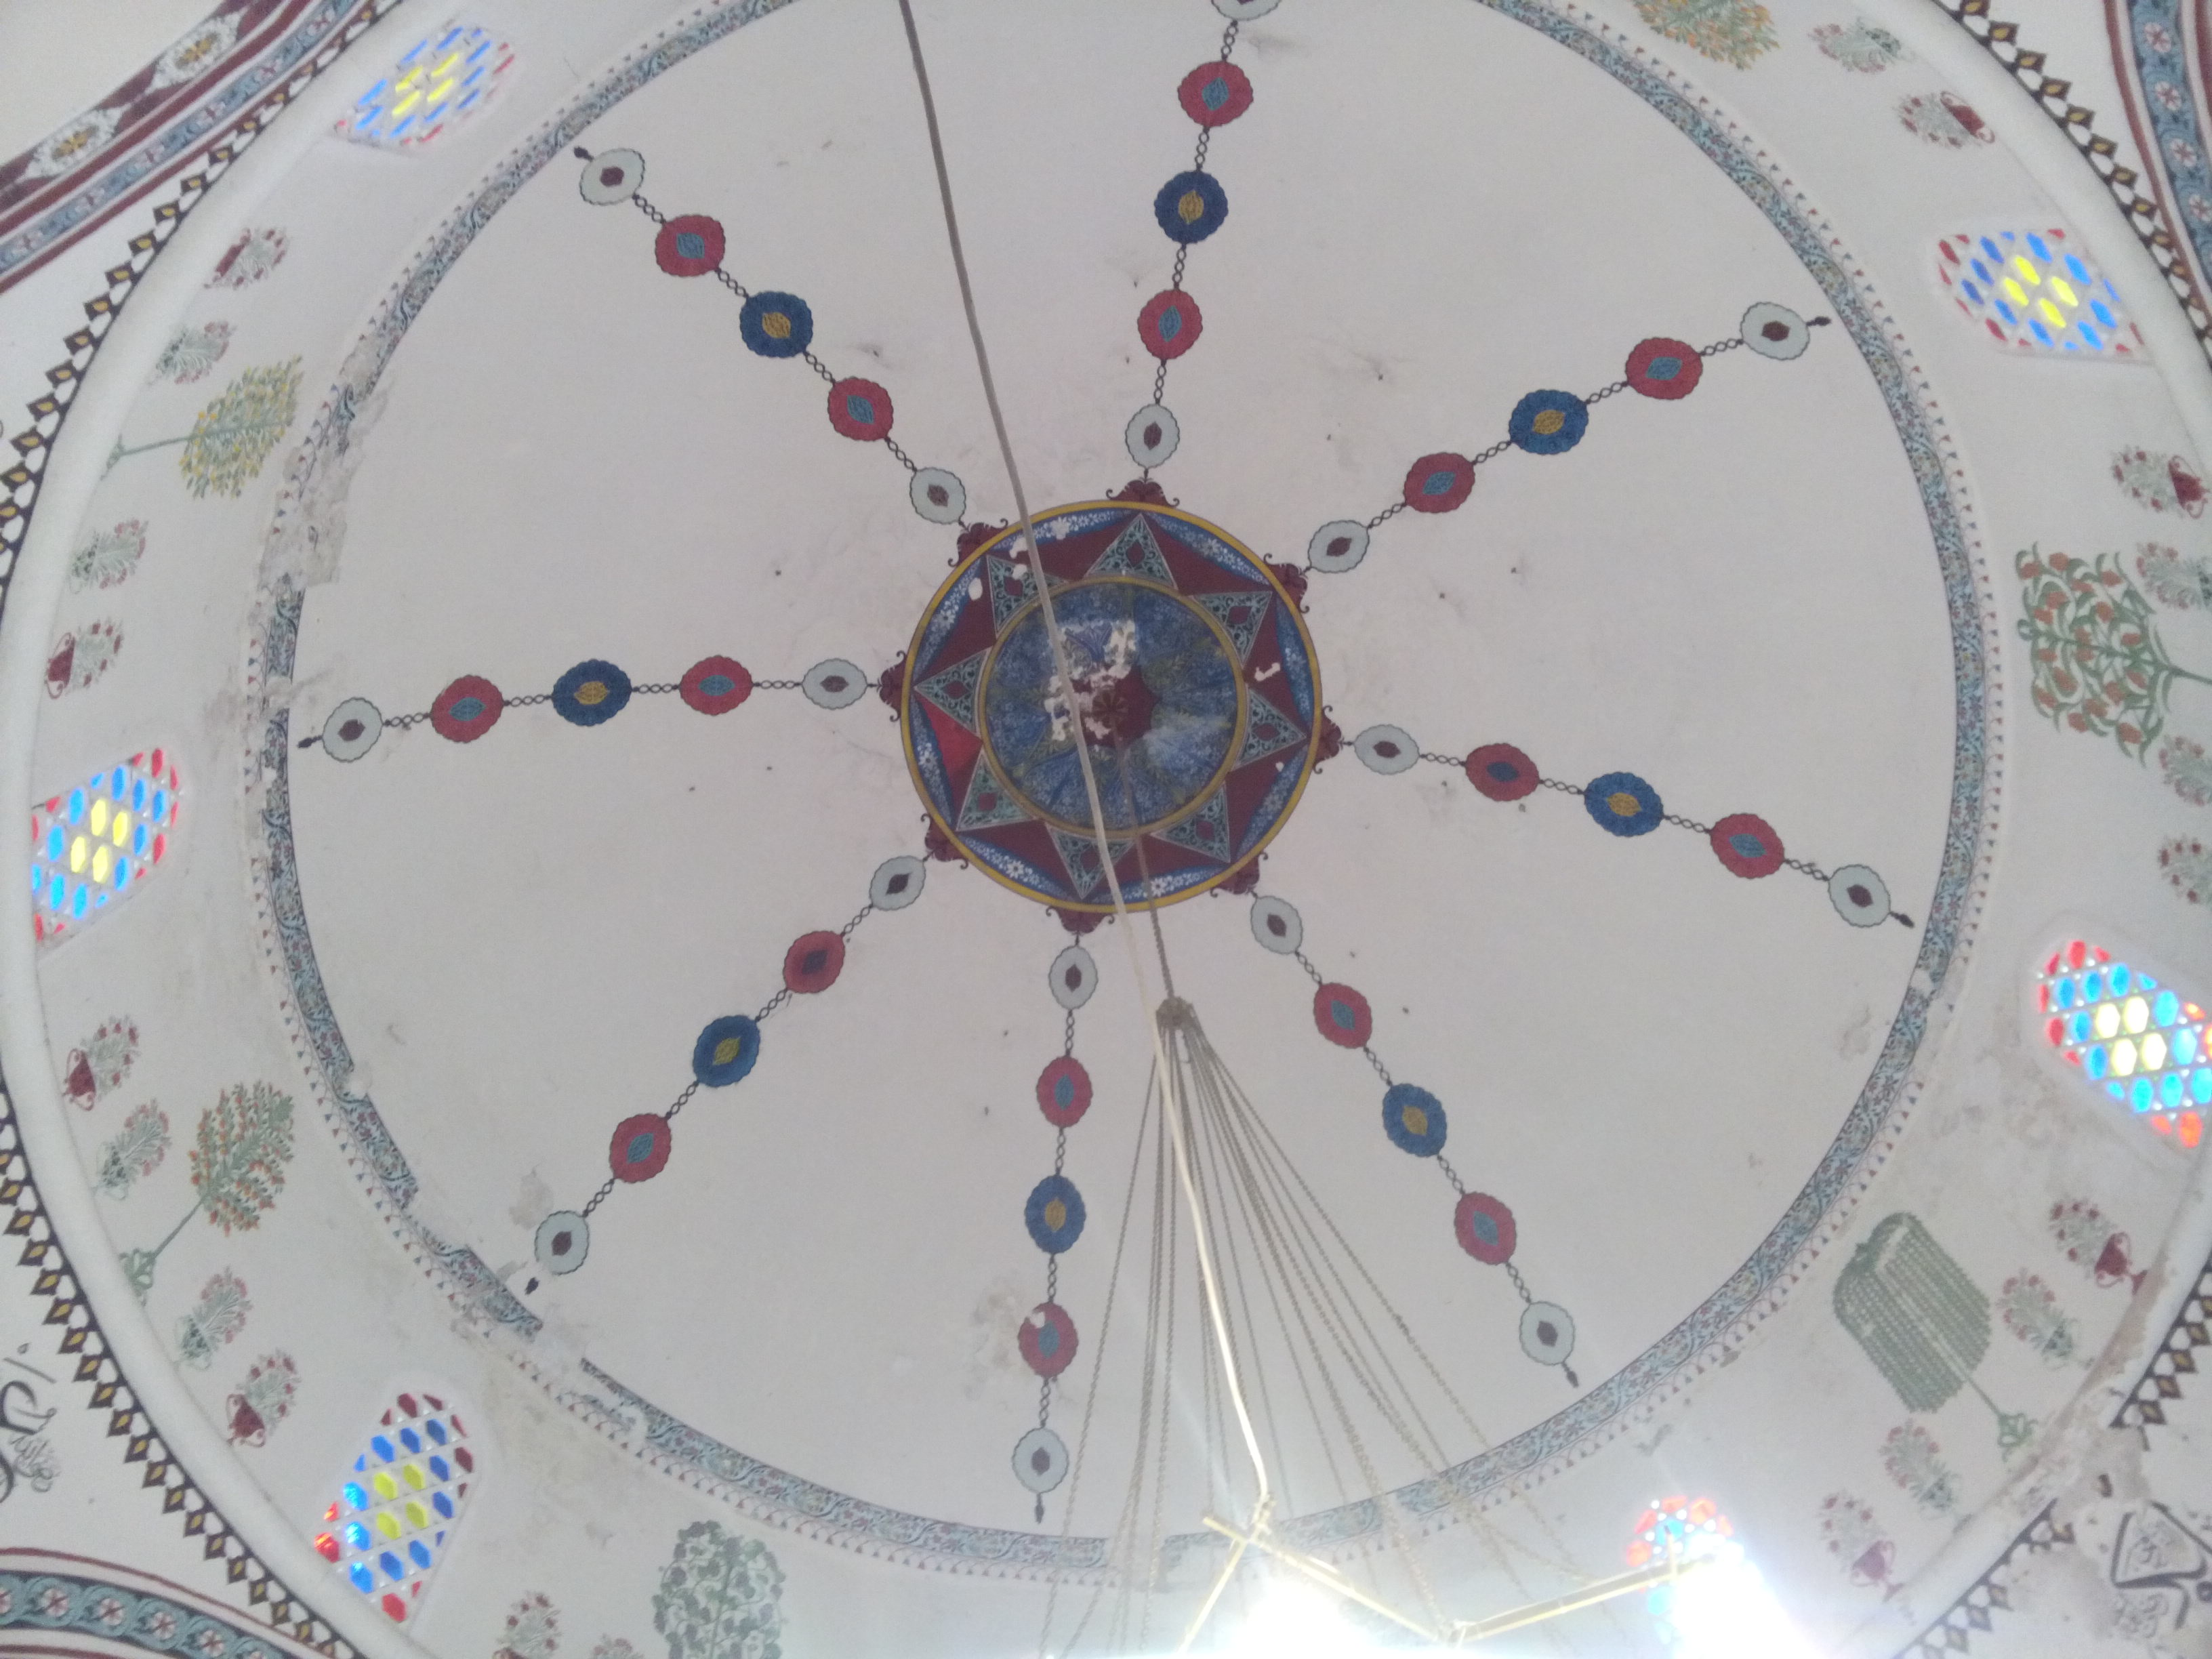 A domed white ceiling with some colourd shapes, from below